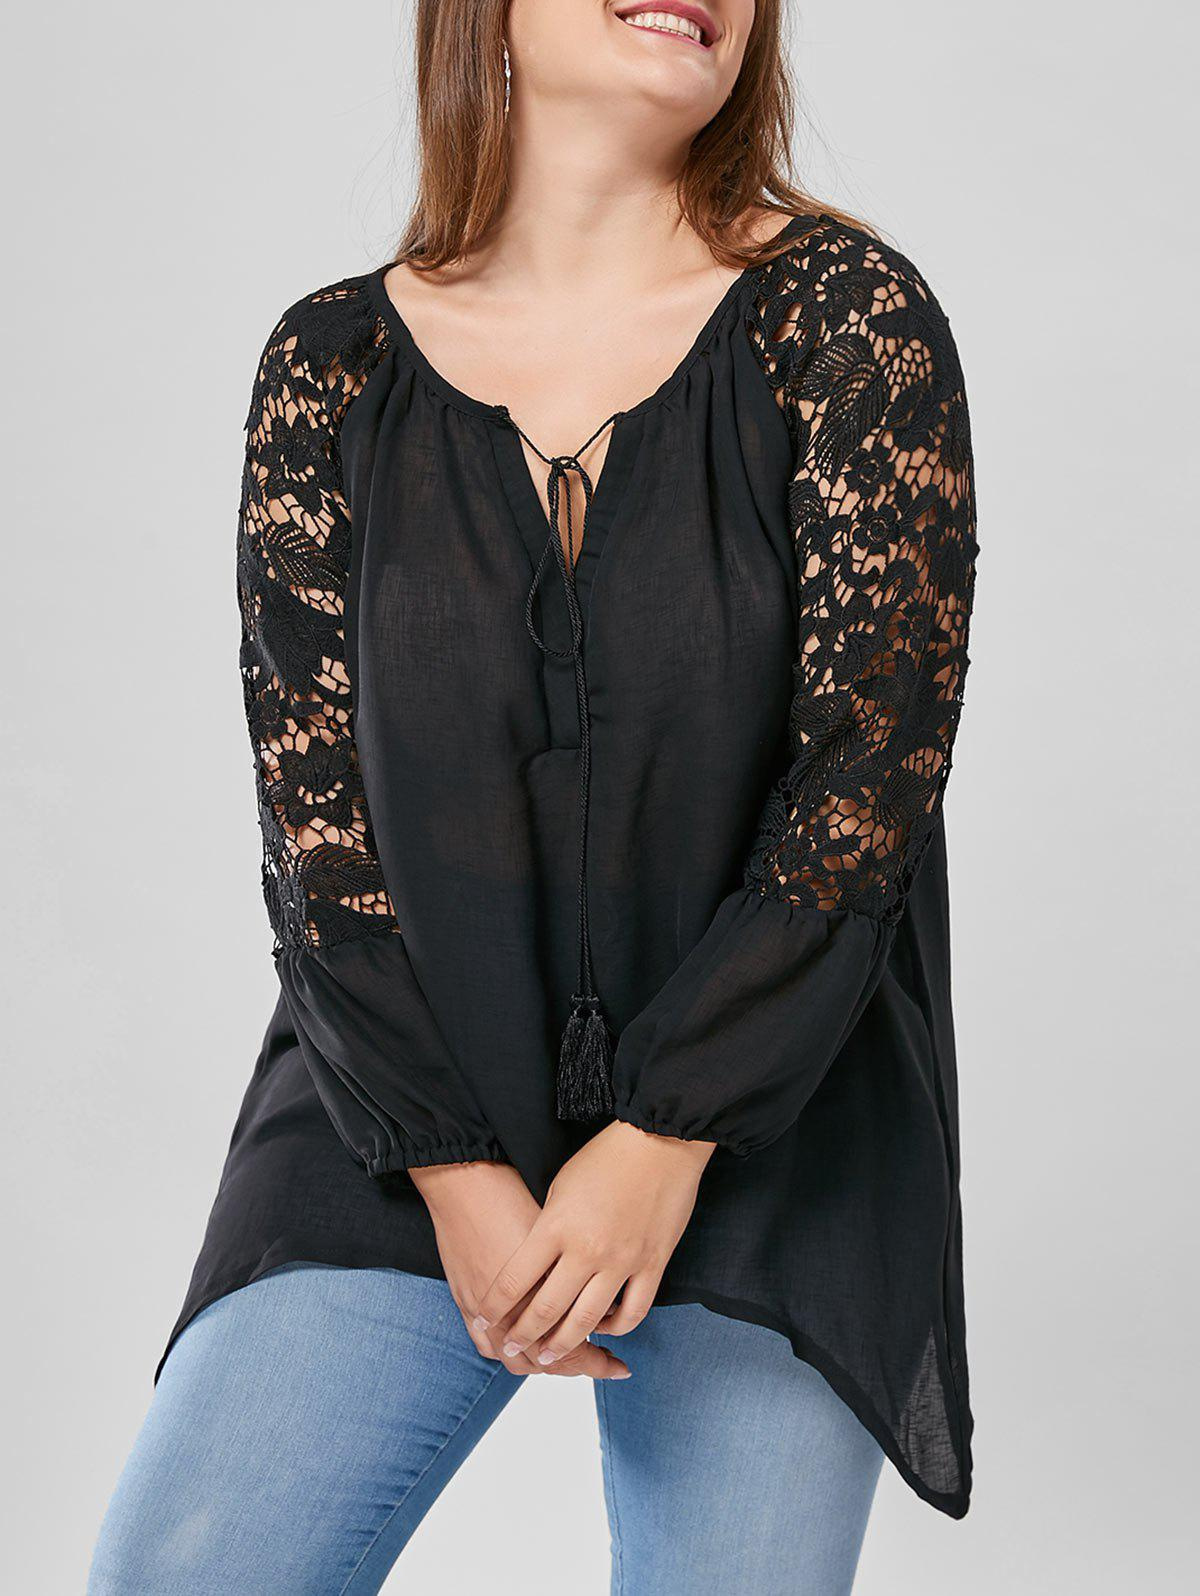 Plus Size Lace Trim Long Sleeve TopWOMEN<br><br>Size: XL; Color: BLACK; Material: Polyester; Shirt Length: Regular; Sleeve Length: Full; Collar: V-Neck; Style: Fashion; Season: Fall,Spring; Pattern Type: Solid; Weight: 0.3000kg; Package Contents: 1 x Top;